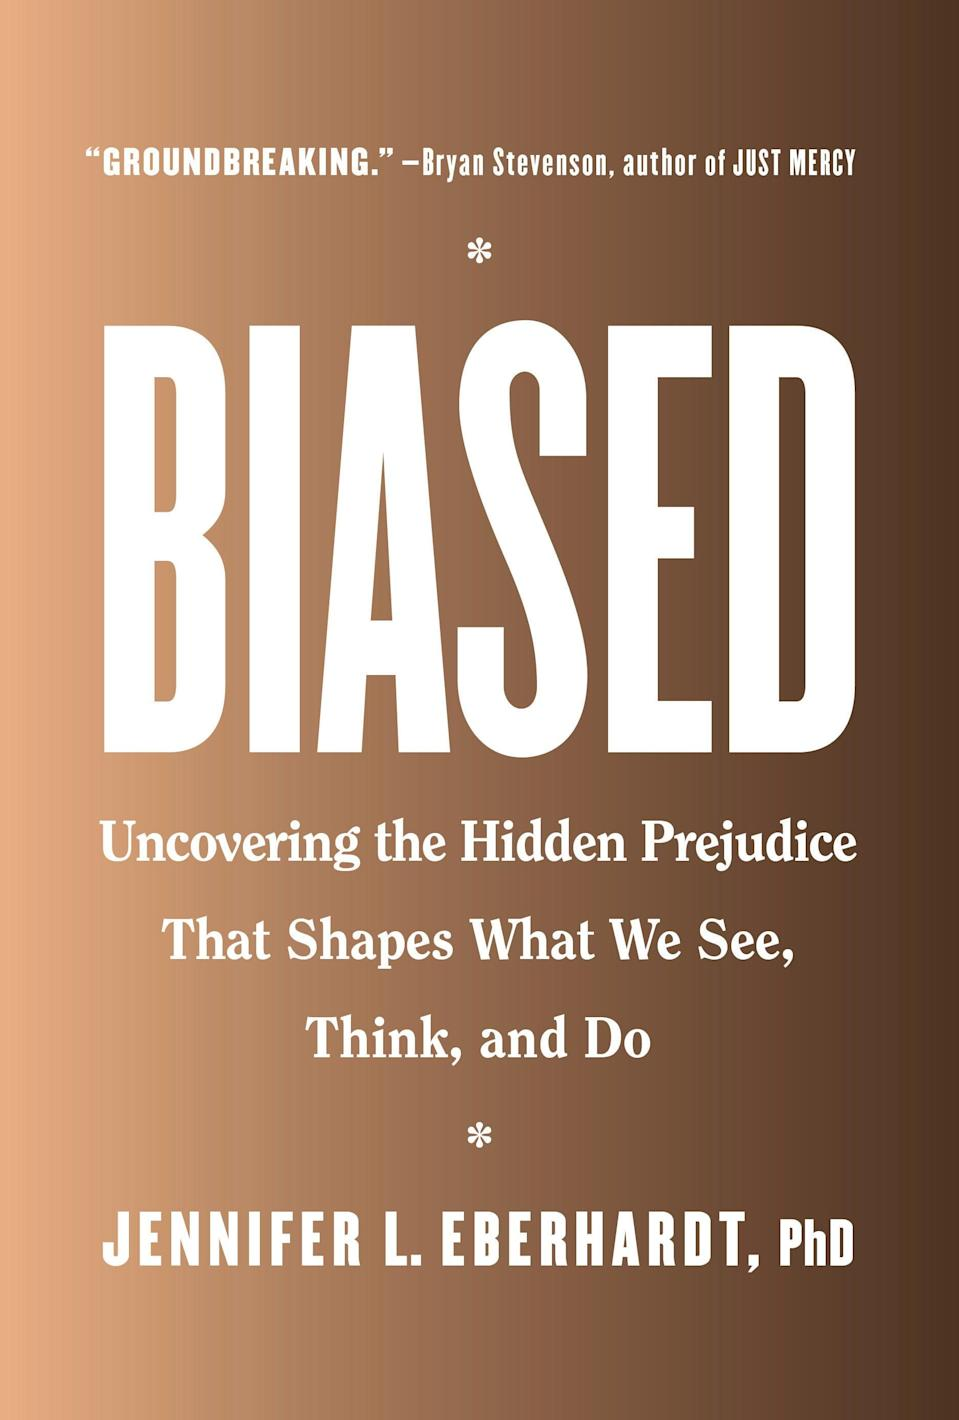 """<p>Jennifer L. Eberhardt's <a href=""""https://bookshop.org/books/biased-uncovering-the-hidden-prejudice-that-shapes-what-we-see-think-and-do/9780735224933"""" class=""""link rapid-noclick-resp"""" rel=""""nofollow noopener"""" target=""""_blank"""" data-ylk=""""slk:Biased""""><strong>Biased</strong></a> is a book on race and discrimination full of compelling research and illuminating studies. But its most exacting arguments are found in the anecdotes and stories of her own, revealing the ways racism wields its forces in institutions like schools and law enforcement and in our personal lives. It should be required reading for anyone who works or lives alongside other human beings, but especially for anyone with a modicum of power.</p>"""